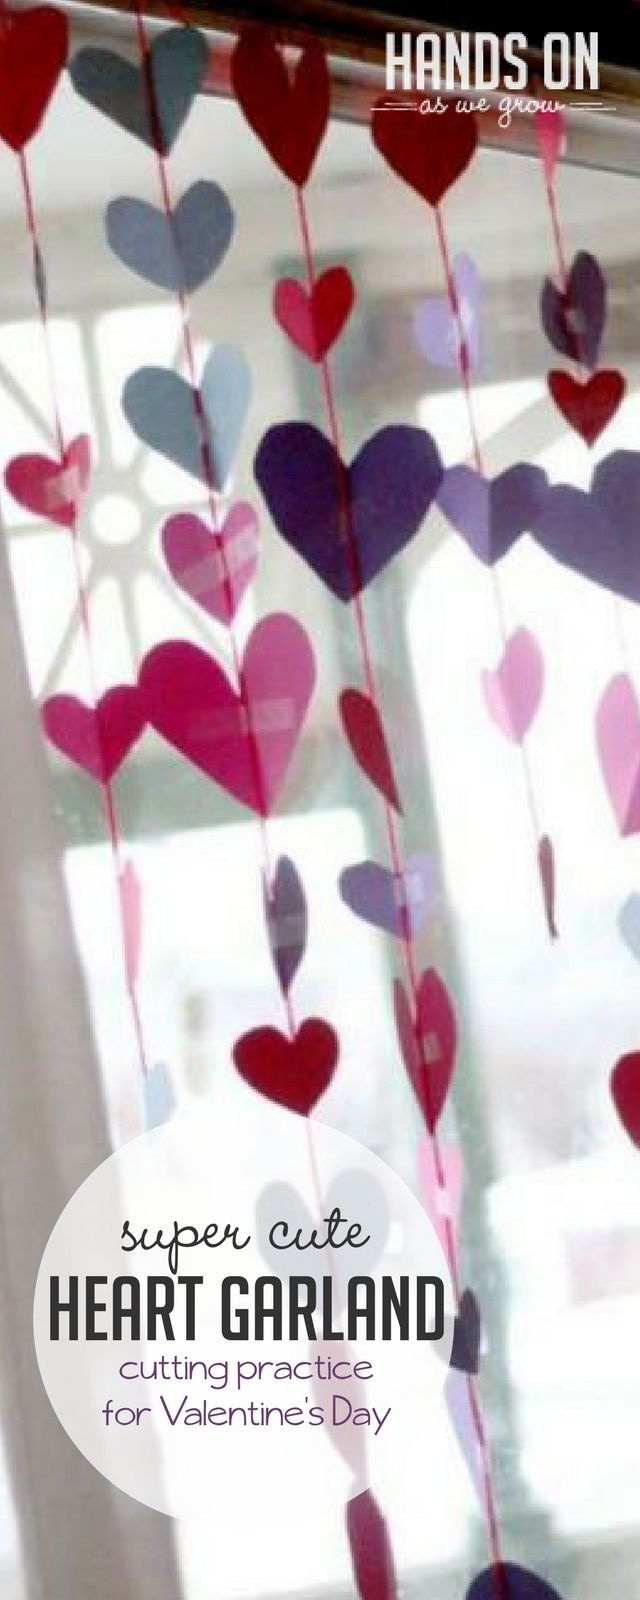 Heart garland for a Valentine's Day is great fine motor practice for preschoolers to cut out hearts and tape up together hearts! via @handsonaswegrow